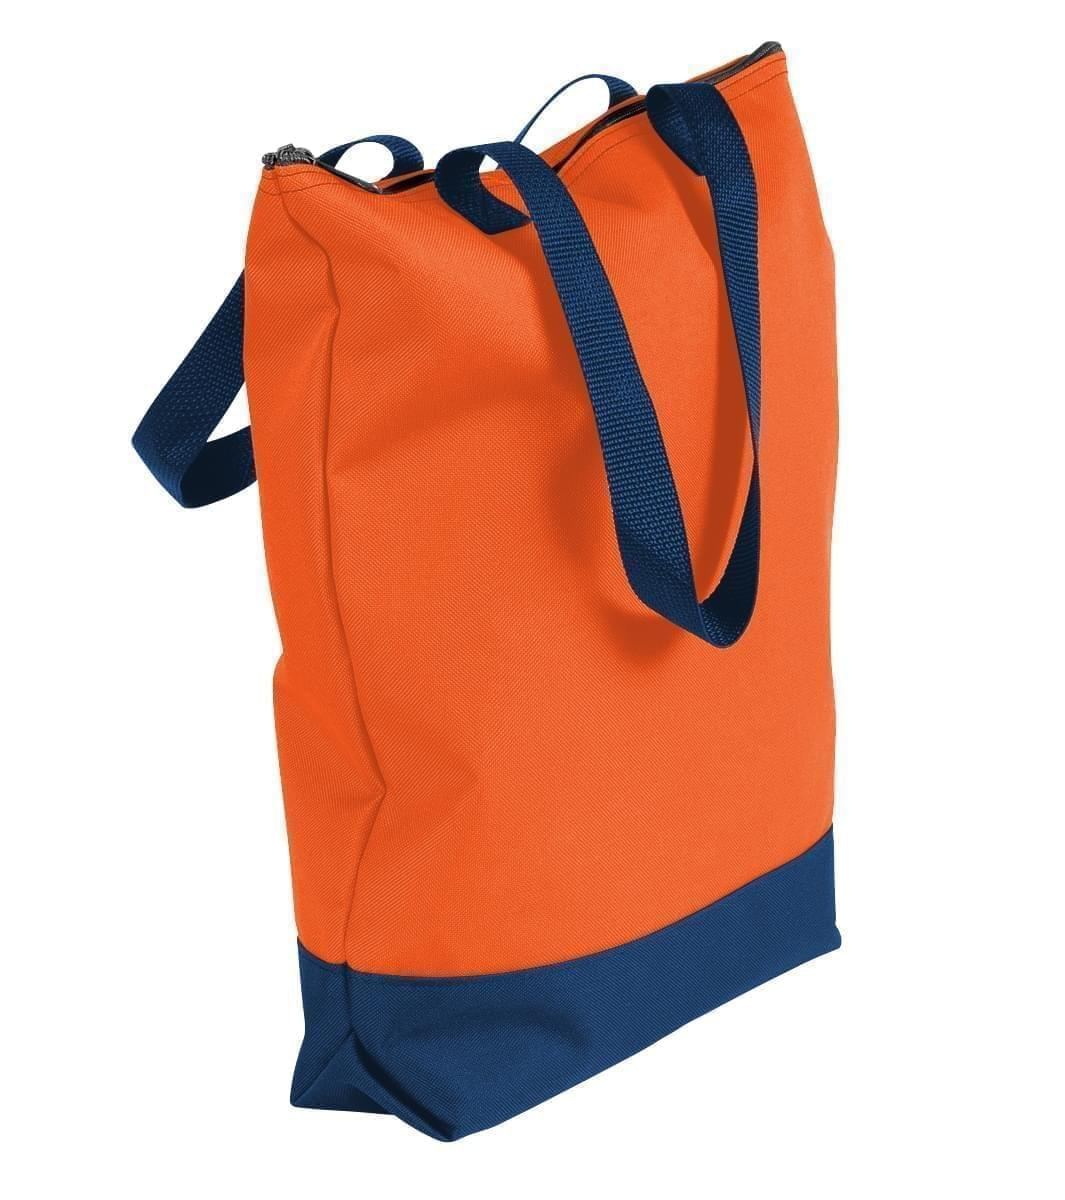 USA Made Poly Notebook Tote Bags, Orange-Navy, 1AAMX1UAXZ